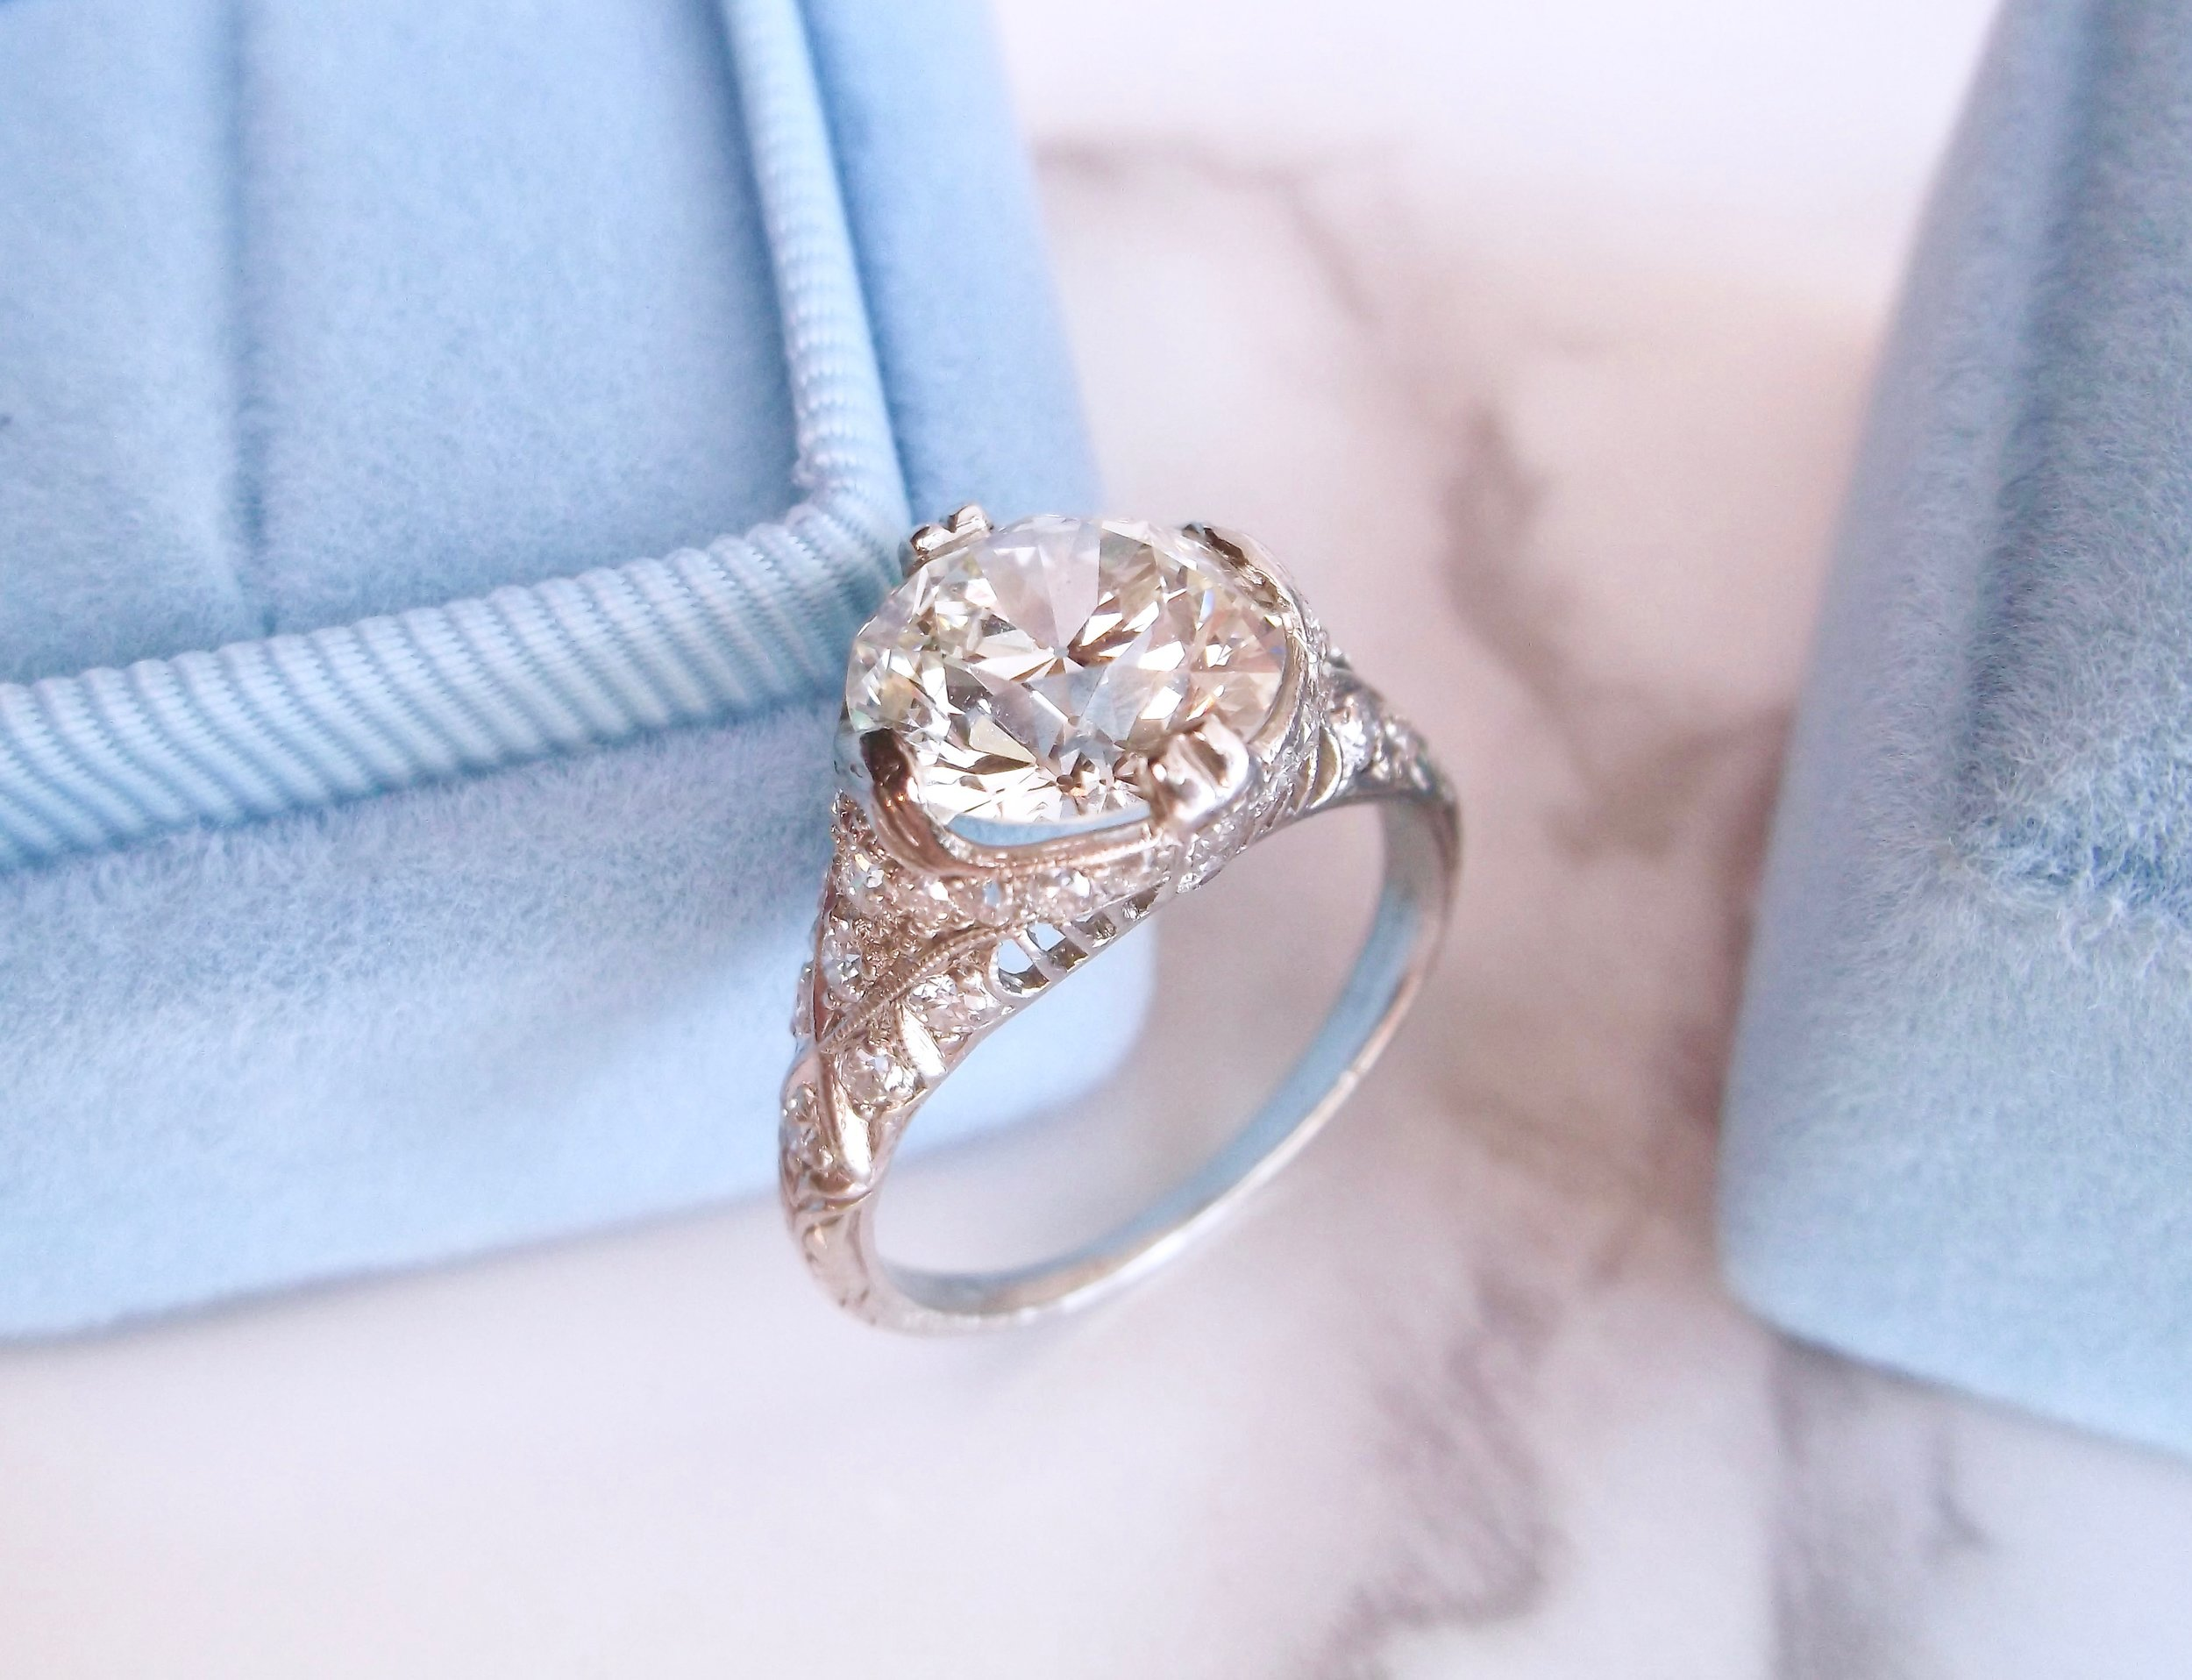 Exceptional 1920's diamond and platinum ring featuring a center 2.99 carat Old European cut diamond with gorgeous filigree and diamond accents in the mounting.  Shop this ring  HERE